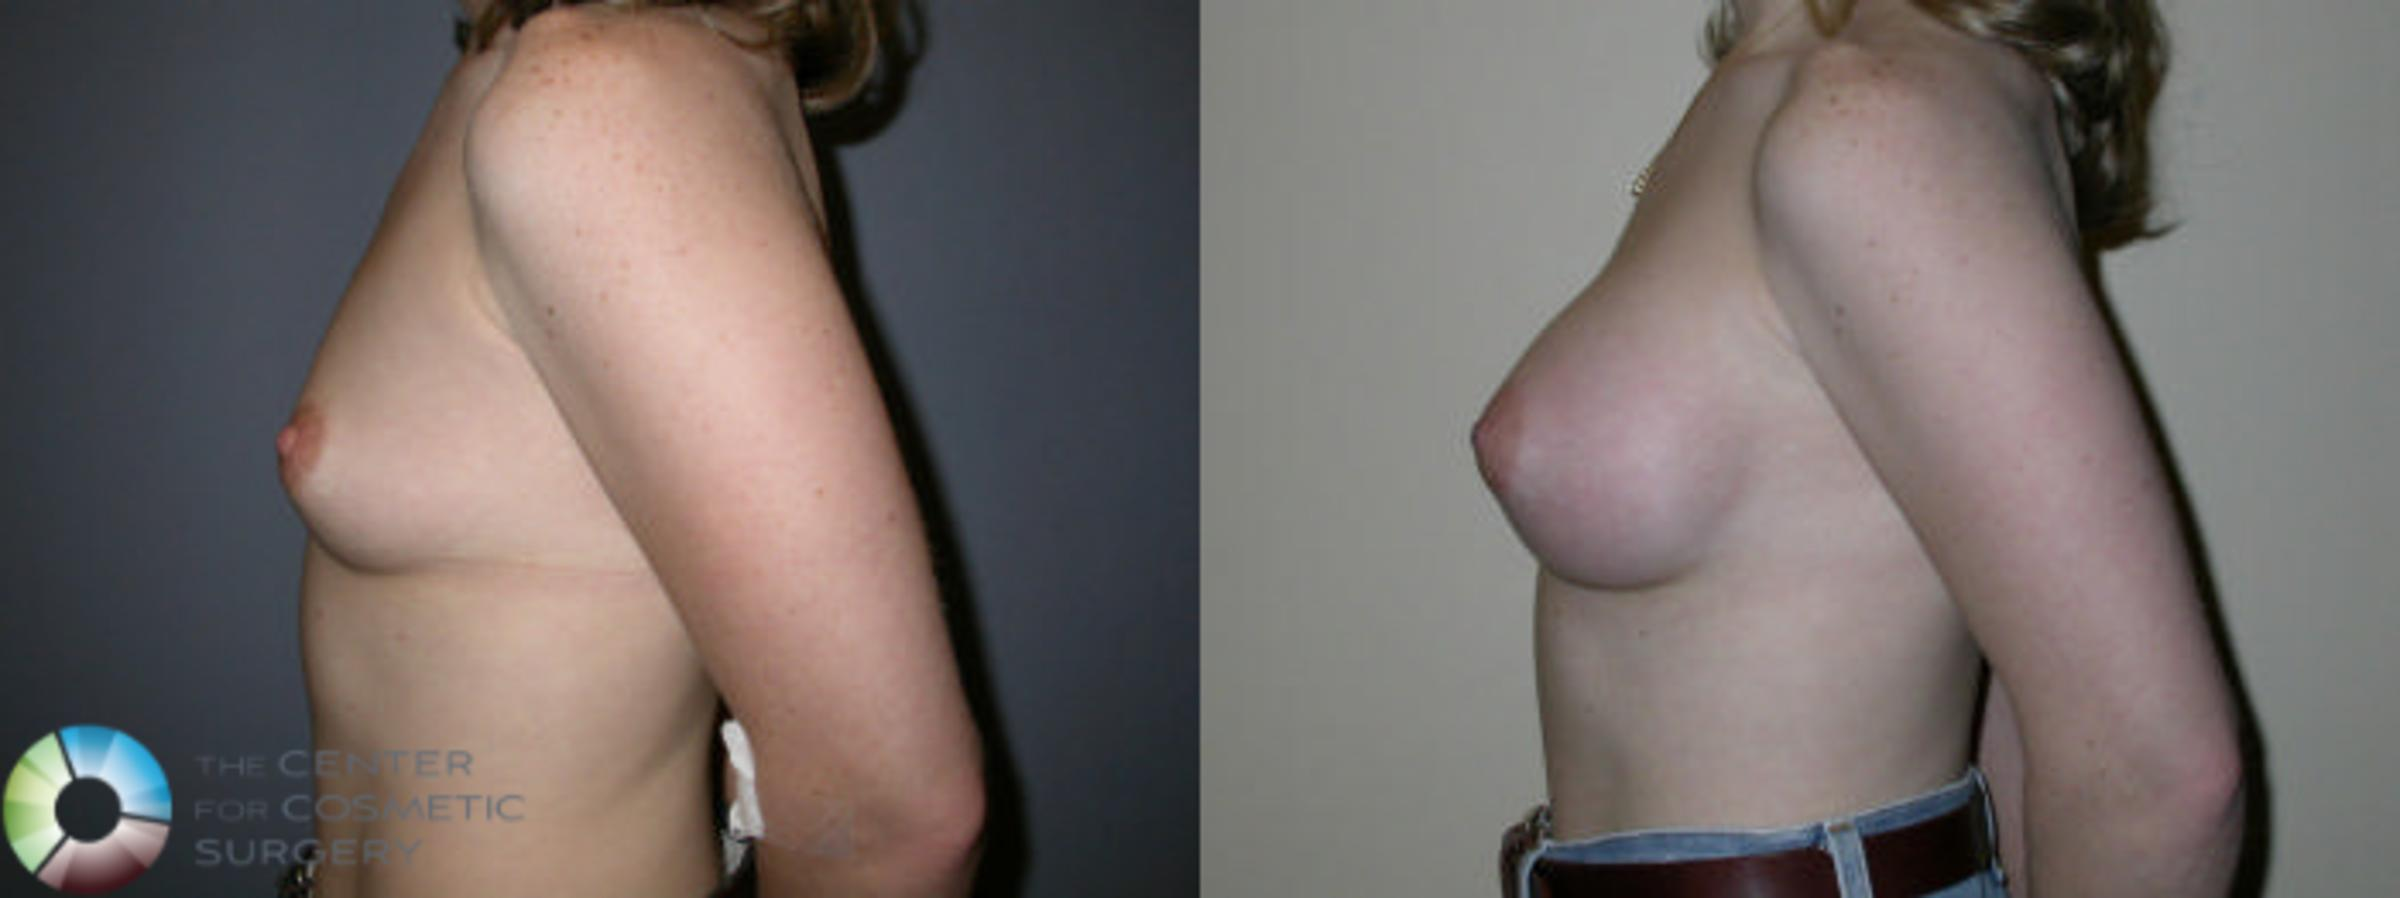 Breast Augmentation Case 63 Before & After View #2 | Golden, CO | The Center for Cosmetic Surgery